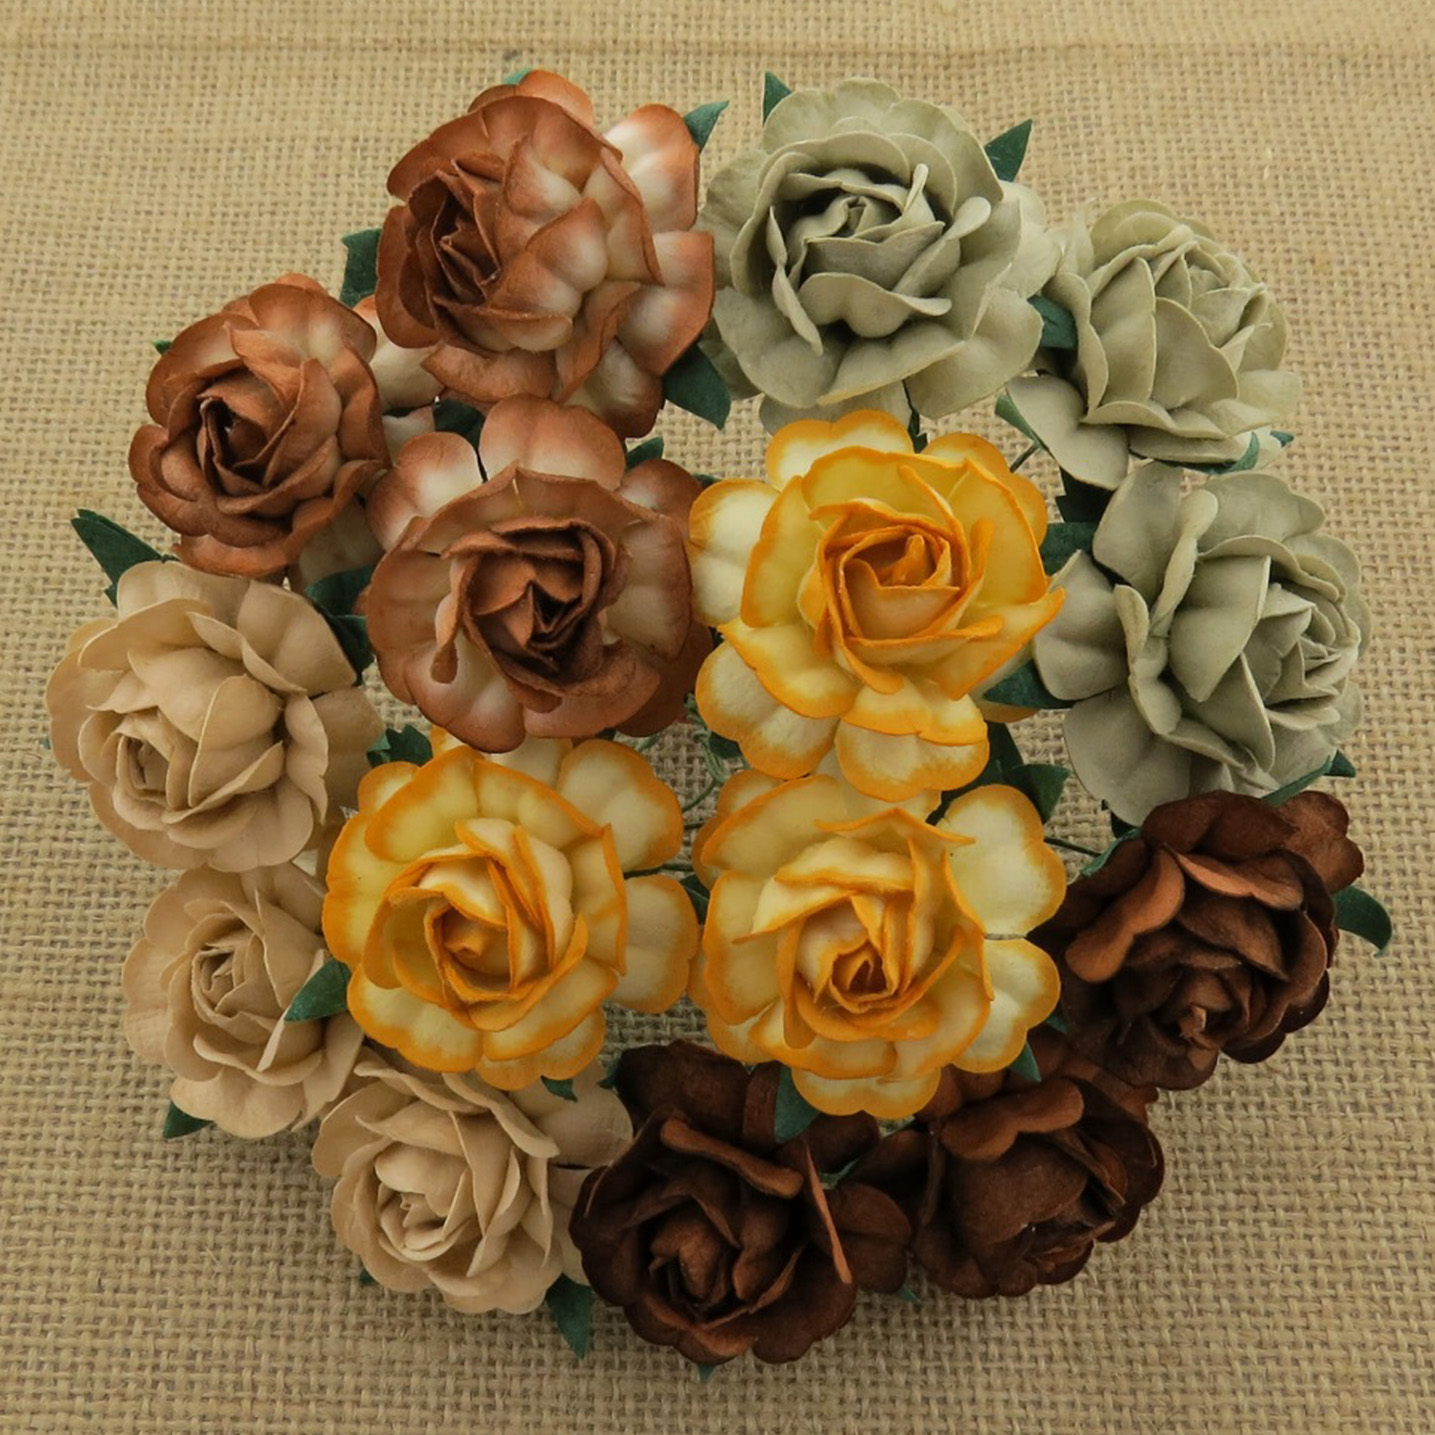 50 MIXED EARTH TONE MULBERRY PAPER TEA ROSES 40mm - 5 COLOR